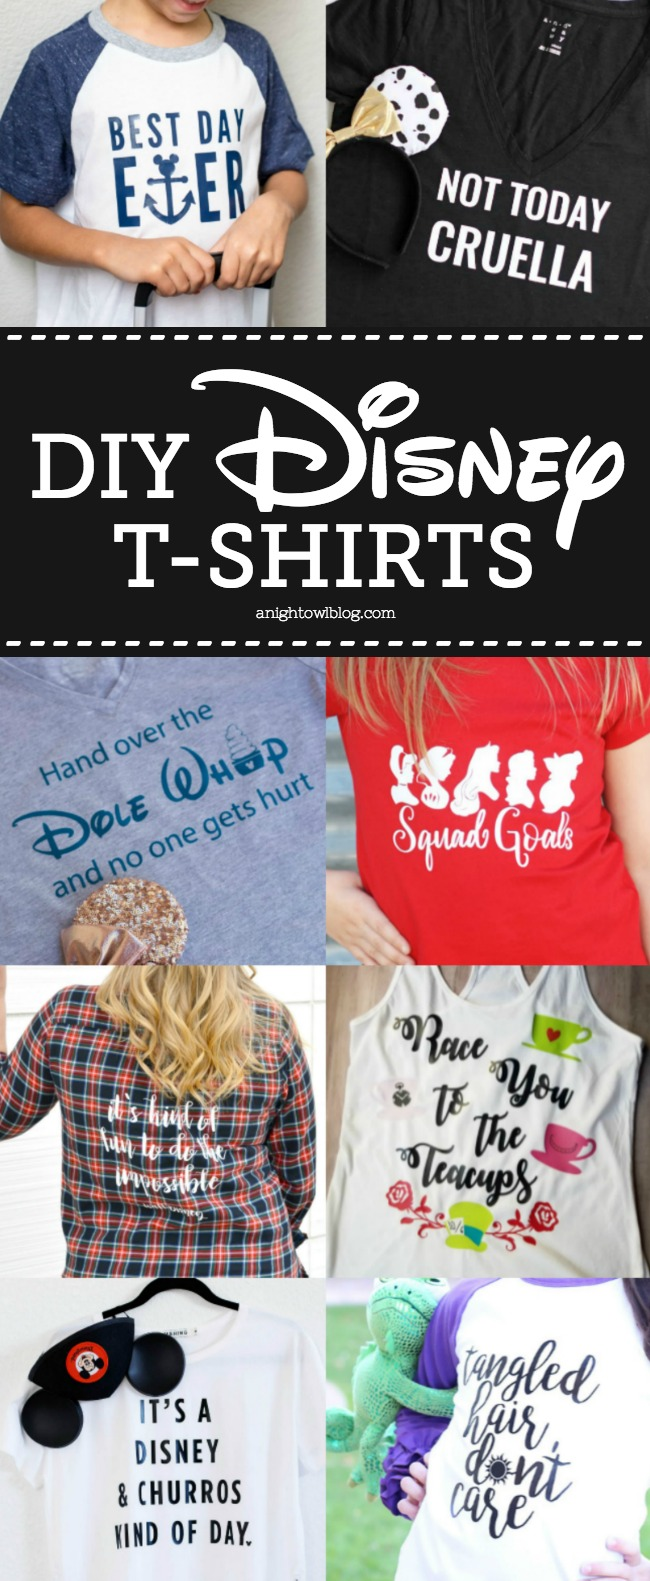 Such a fun list of DIY Disney Tees! #Disney #DisneyDIY #DisneySMMC